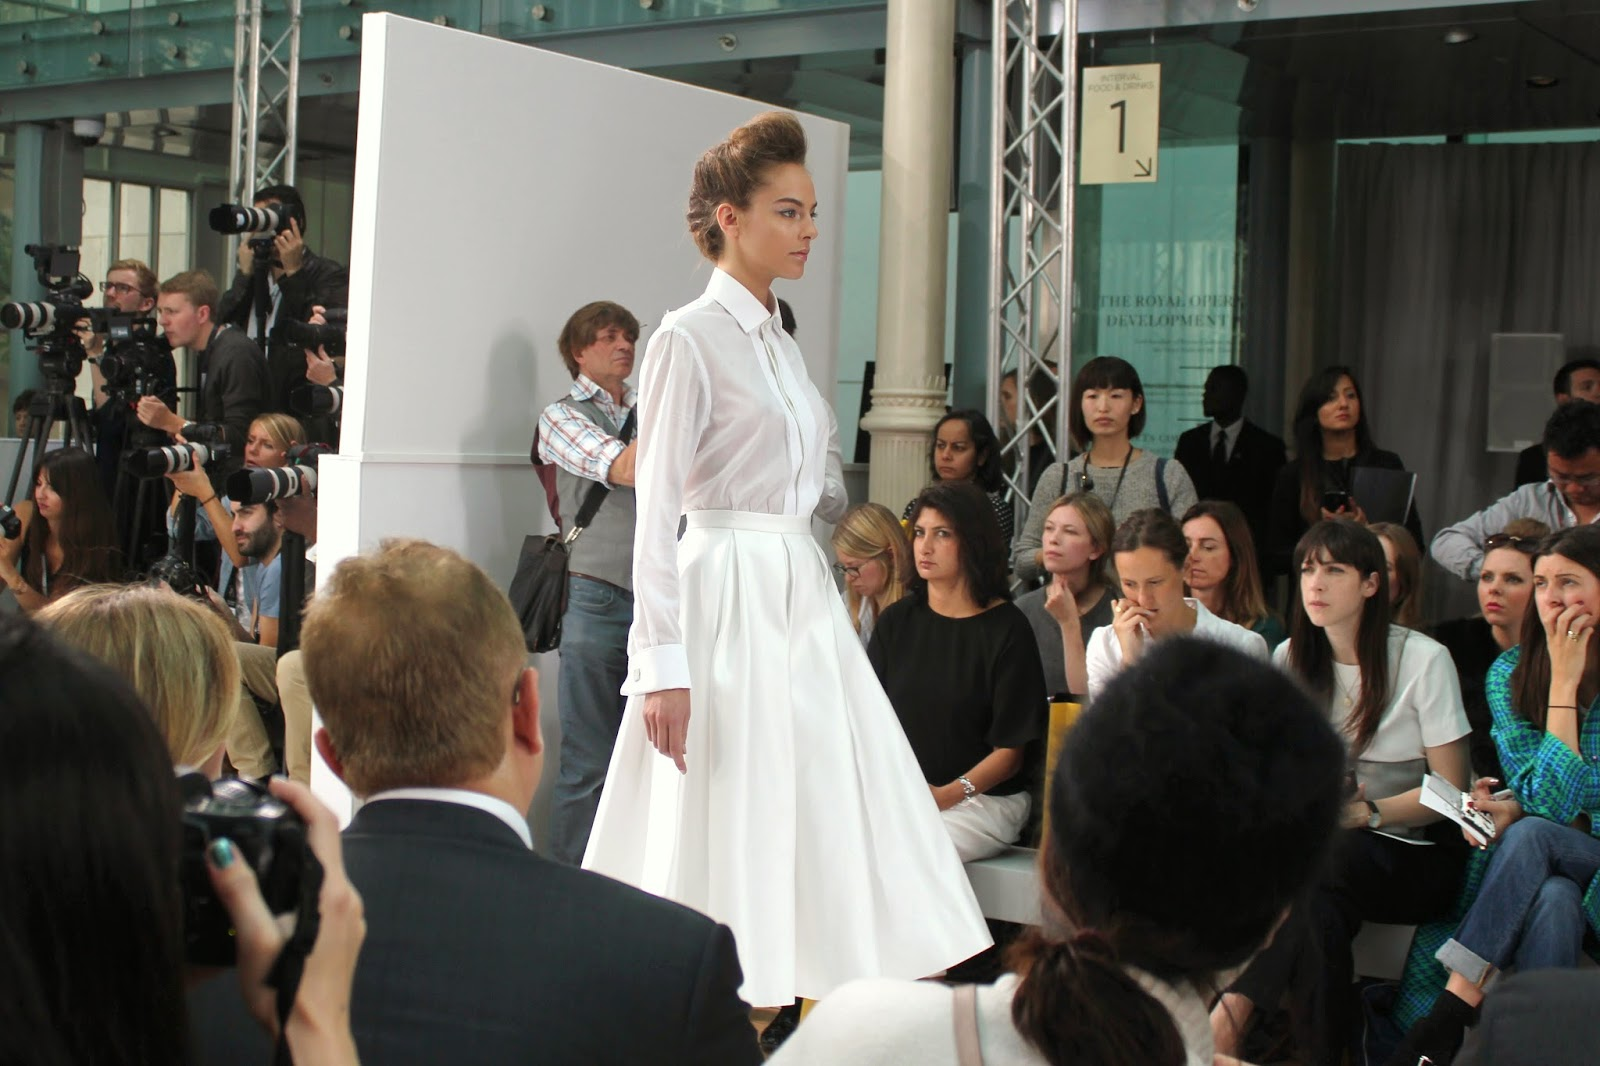 london-fashion-week-2014-lfw-DAKS-show-catwalk-spring-summer-2015-models-clothes-fashion-frow-royal-opera-house-shirt-skirt